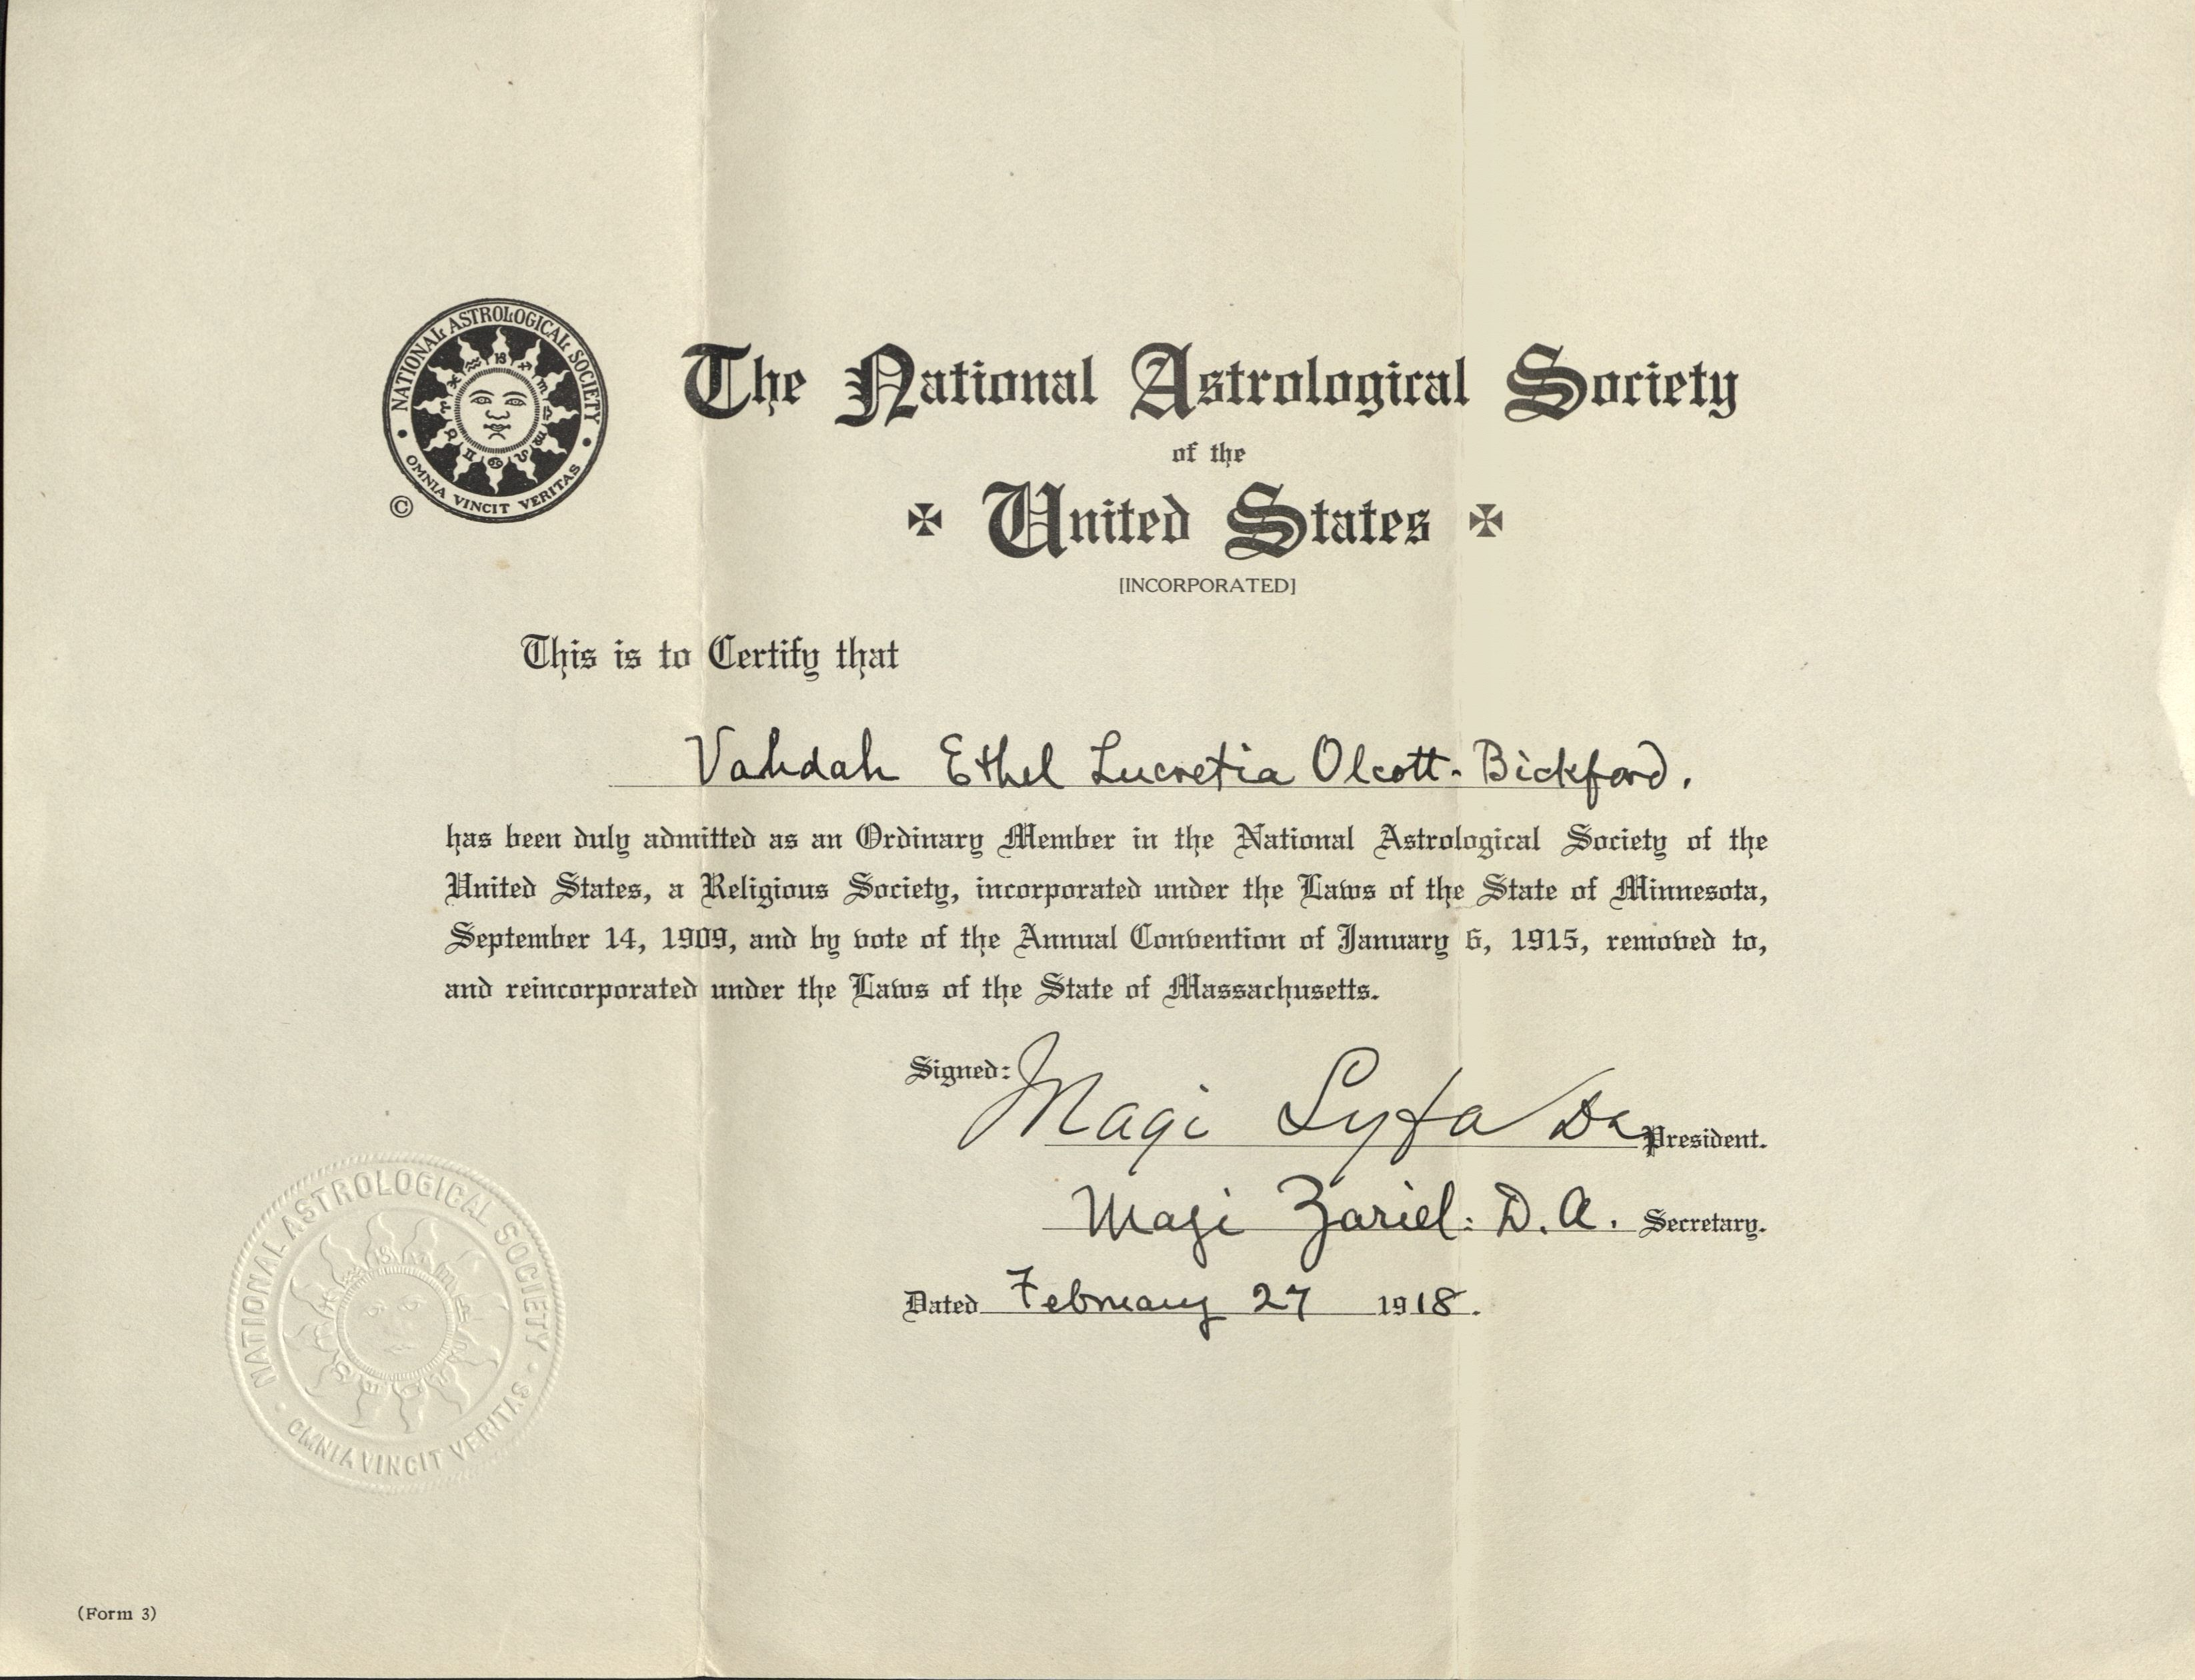 Inspirational photograph of norwalk birth certificate business los angeles archivists collectiveastrological archives los angeles archivists collectiveastrological archives from norwalk birth certificate aiddatafo Gallery